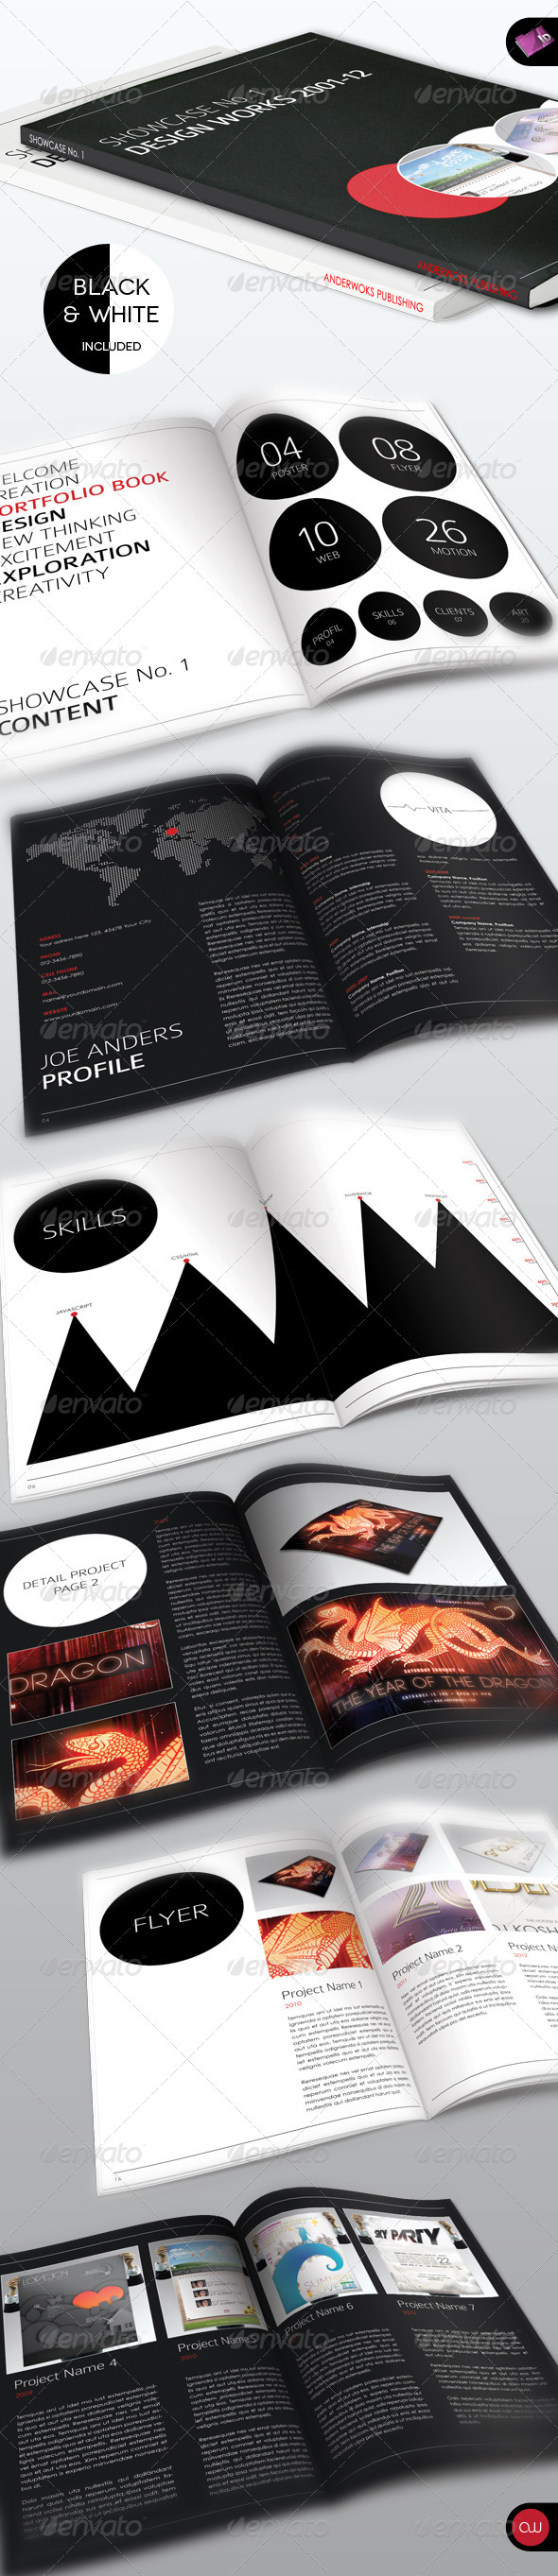 Portfolio Brochure Template - Vol.5 - Corporate Brochures